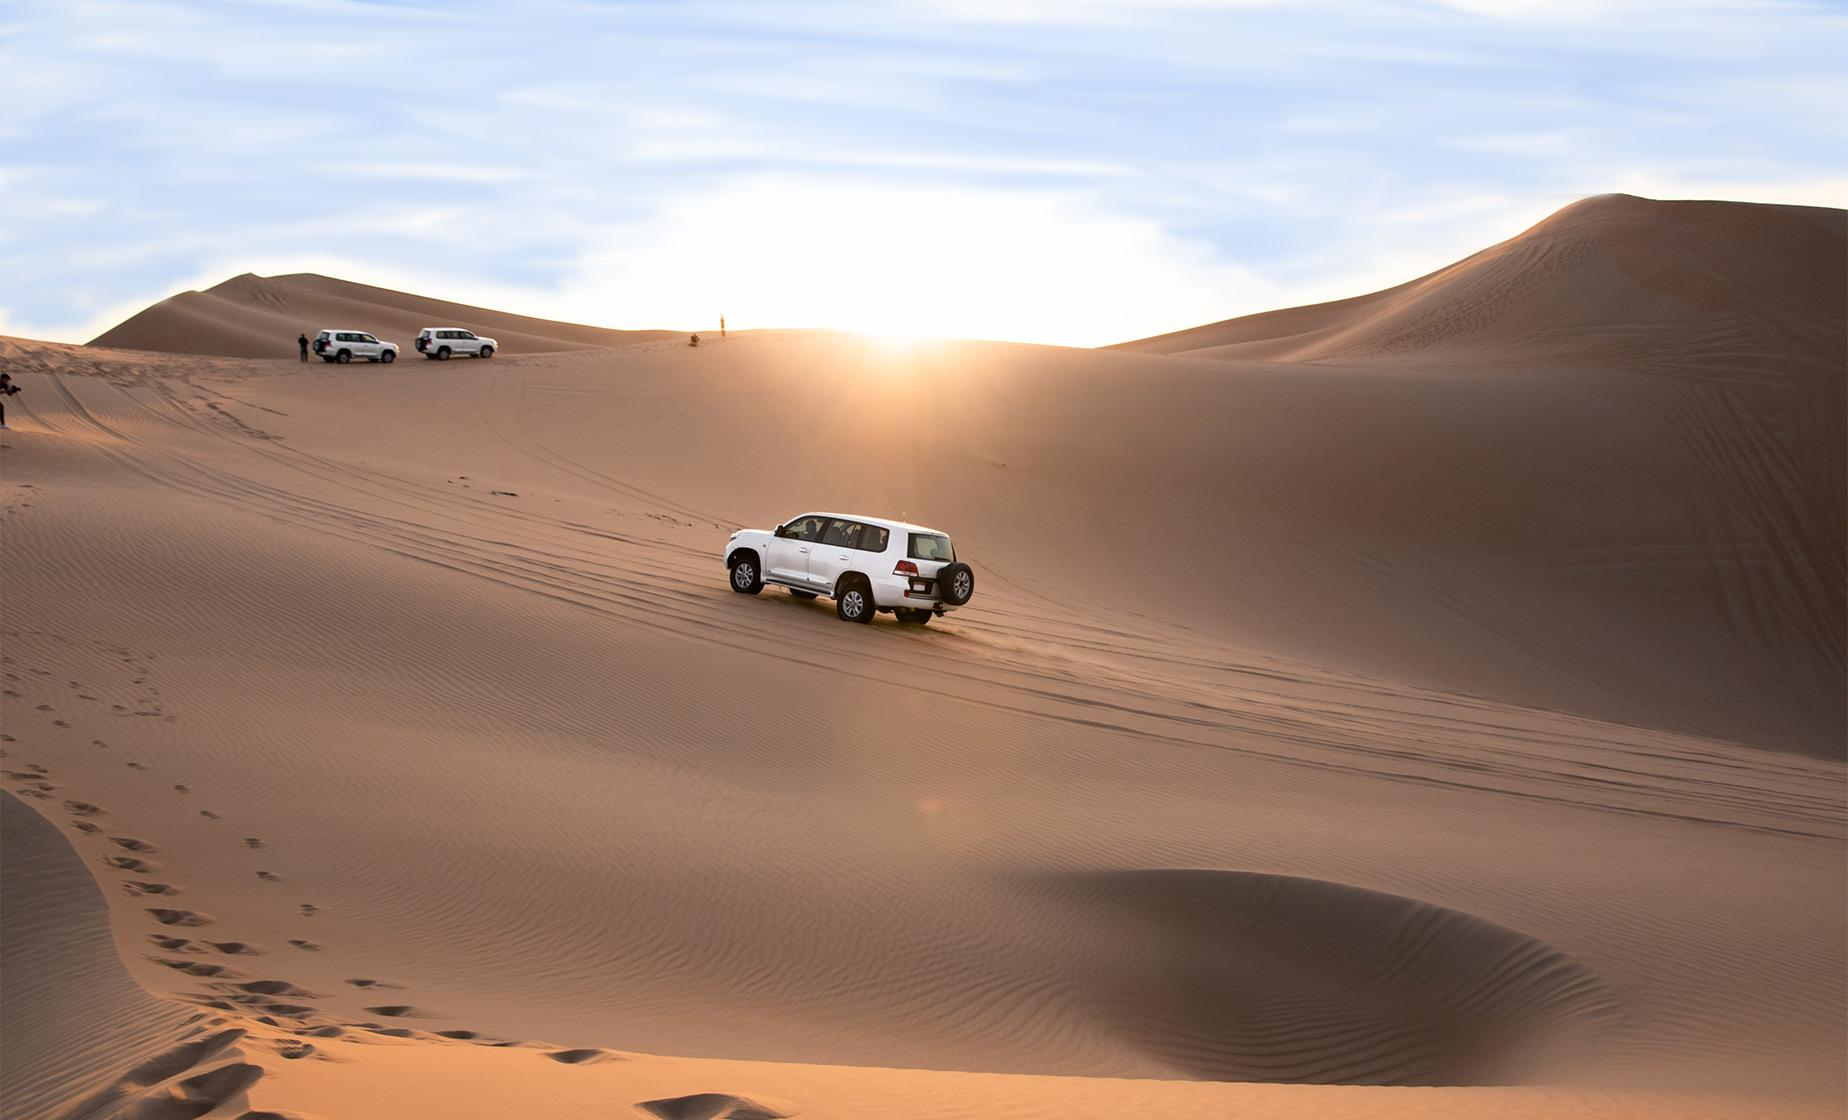 4 x 4 Morning Safari Adventure Tour Abu Dhabi Desert